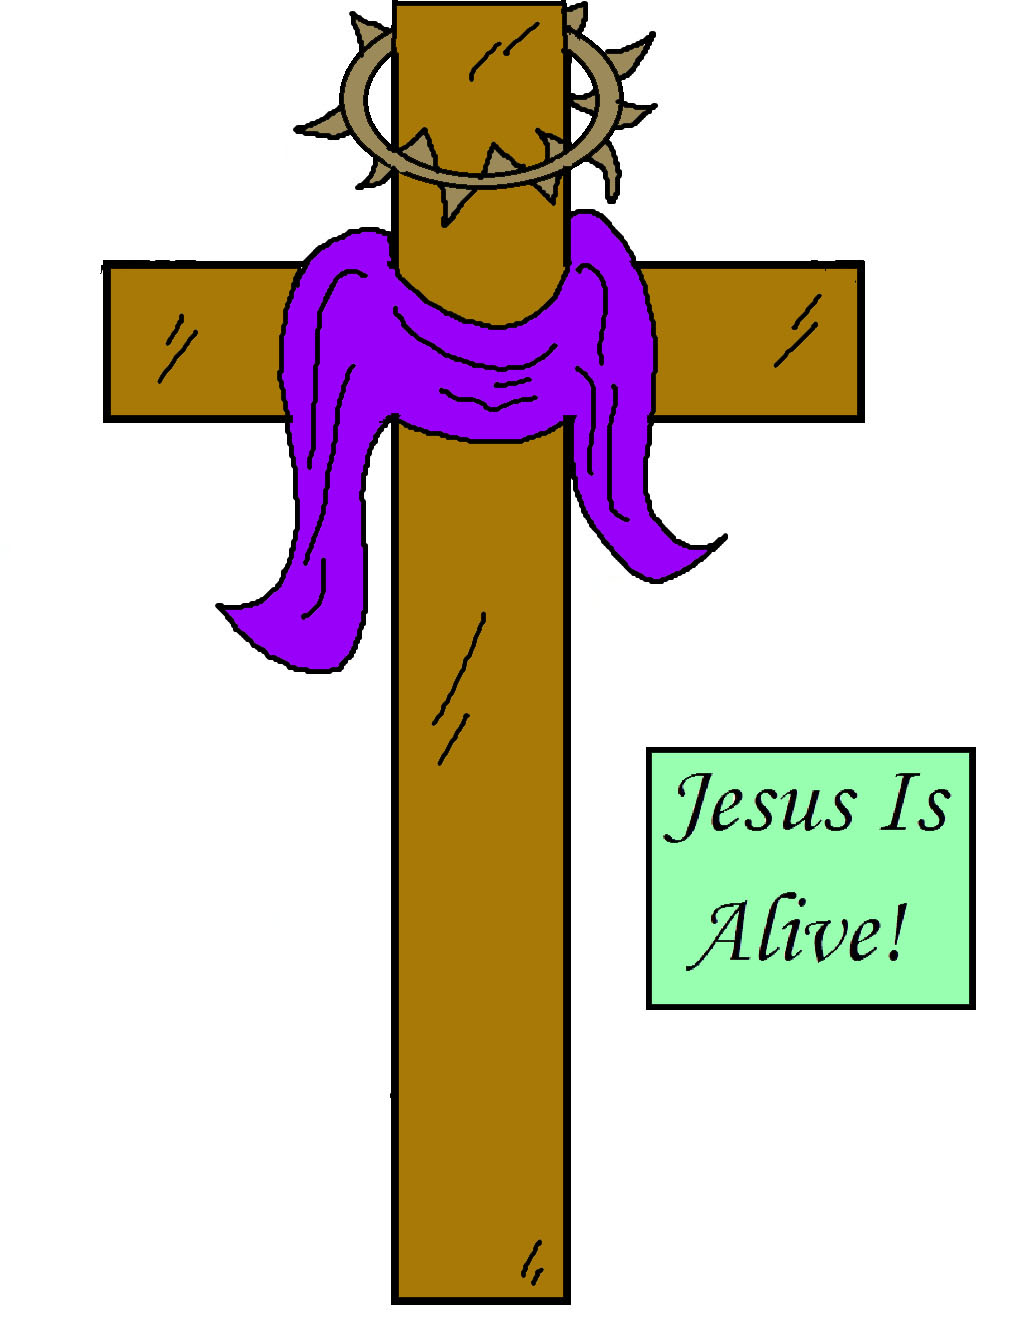 Easter hd images freechristianeasterclipartforkids. Christian clipart alive